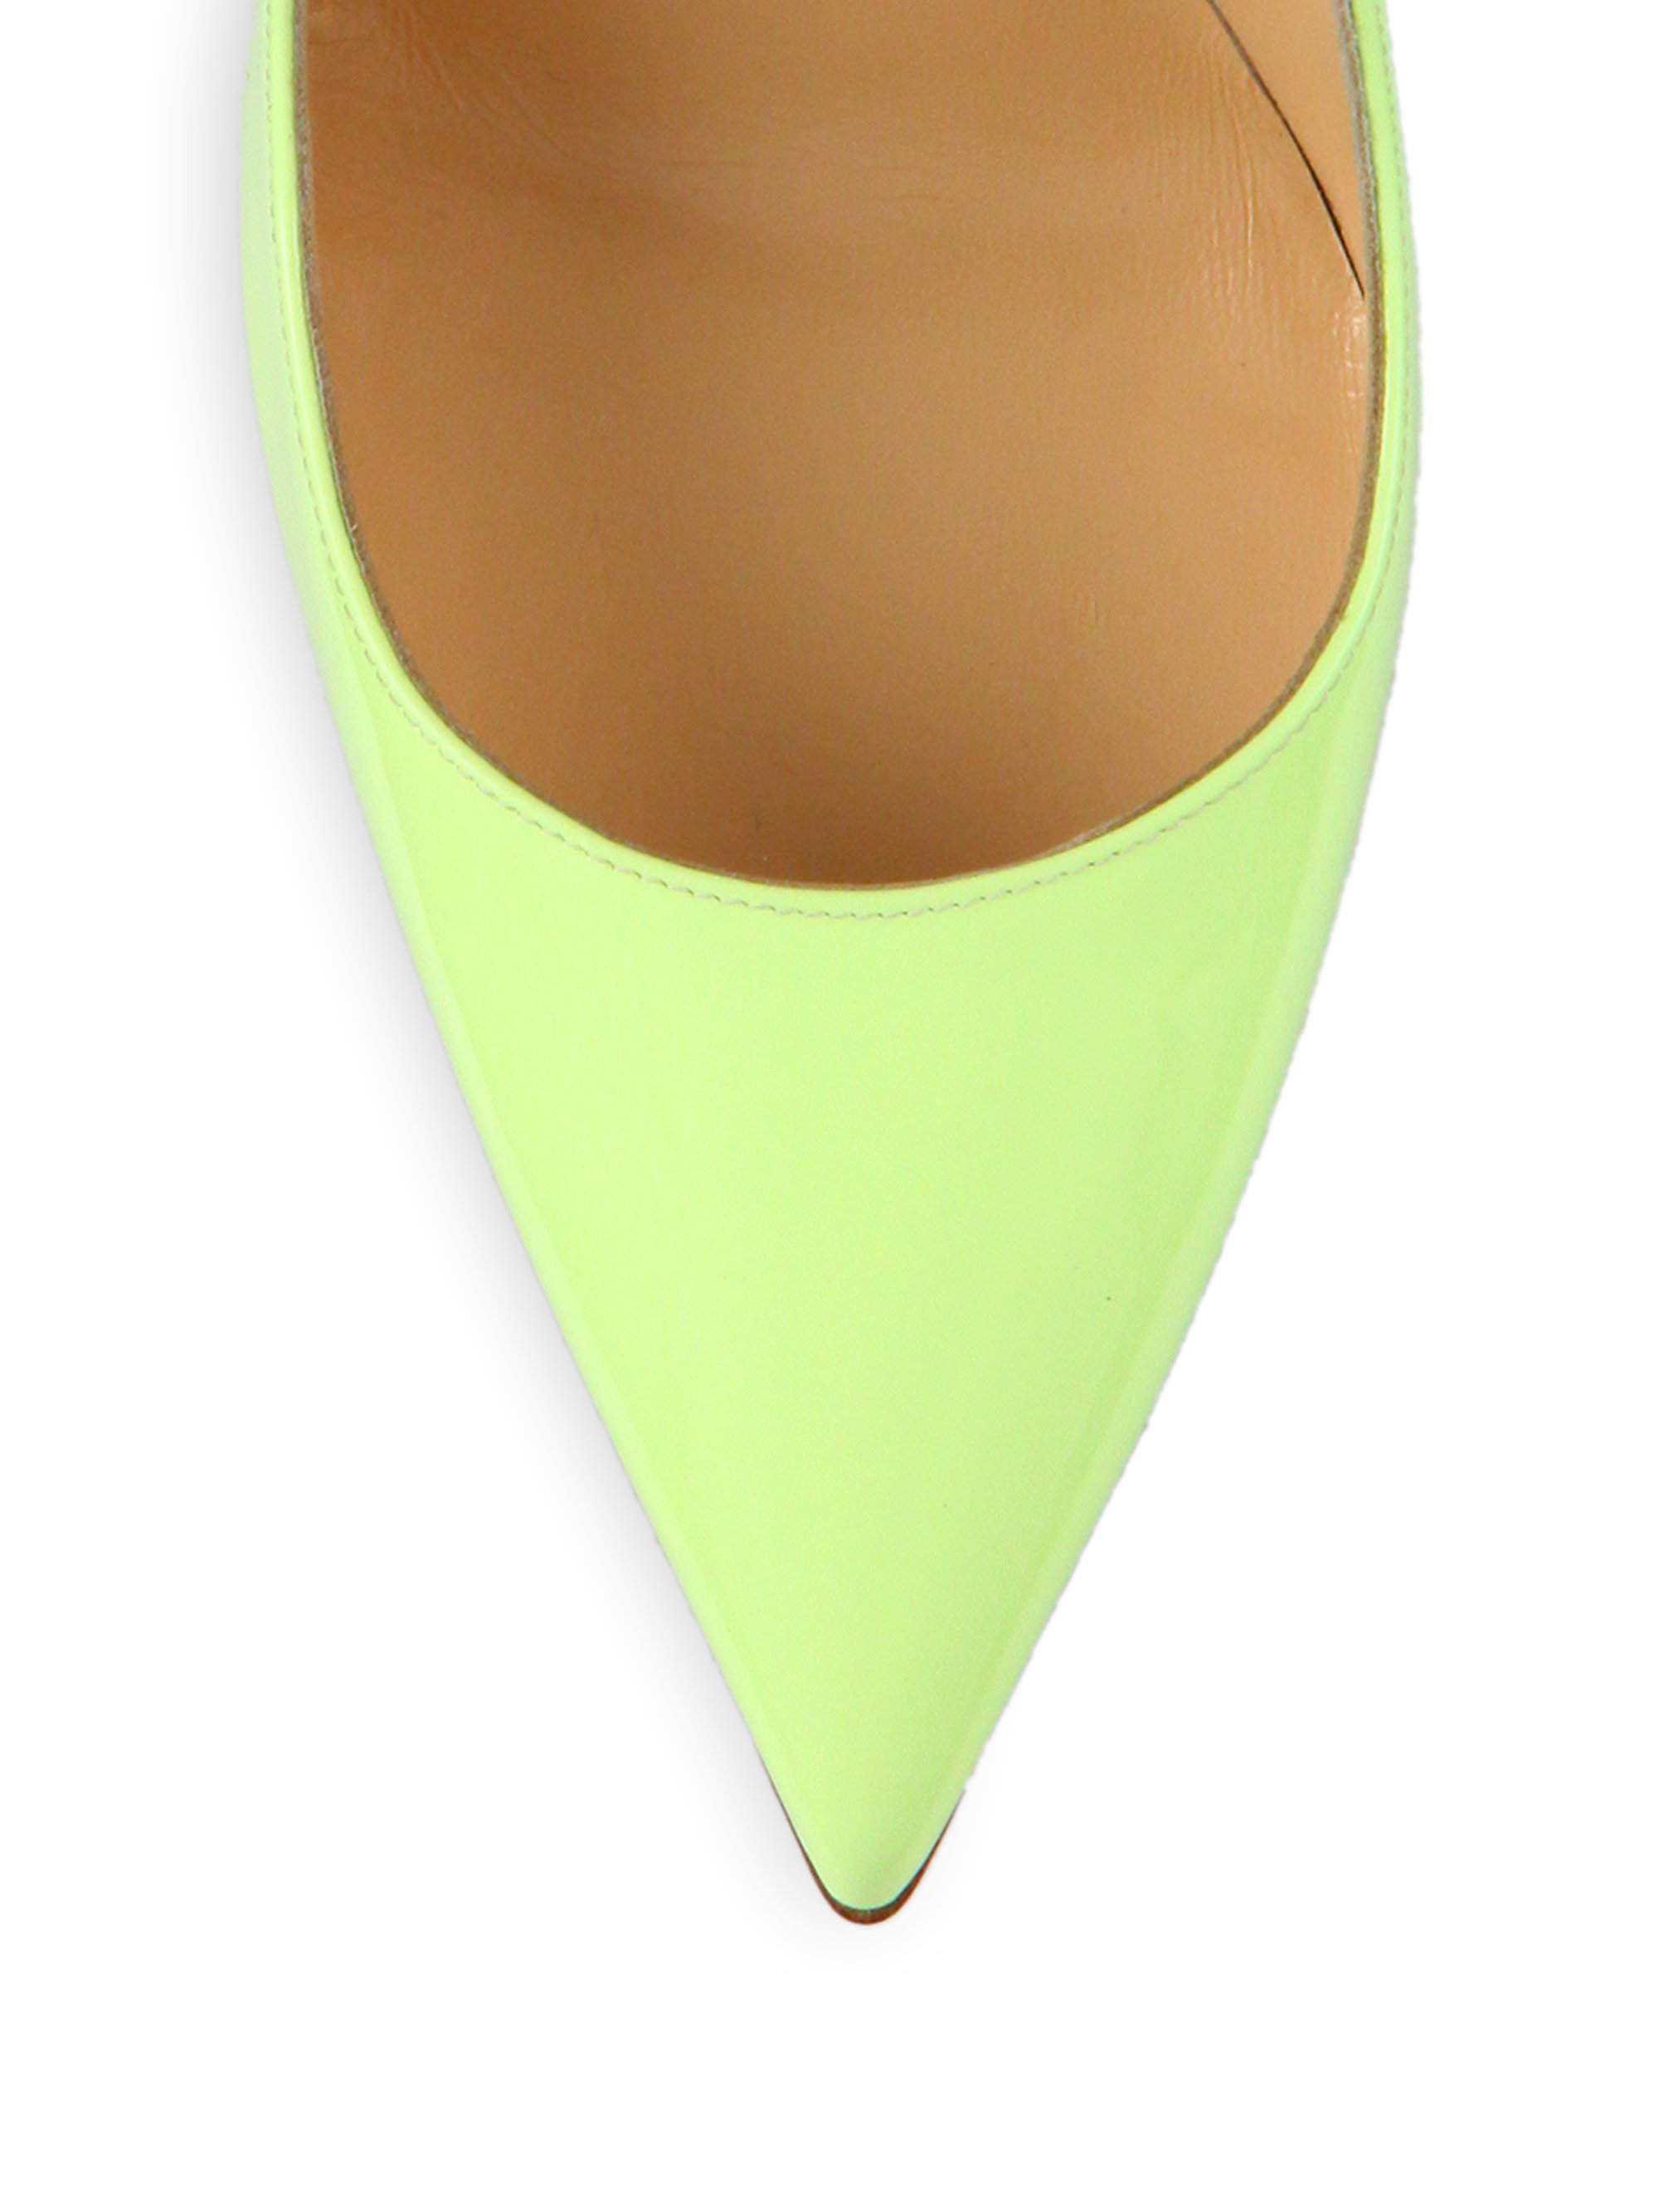 christian louboutin pointed-toe pumps Green patent leather | The ...